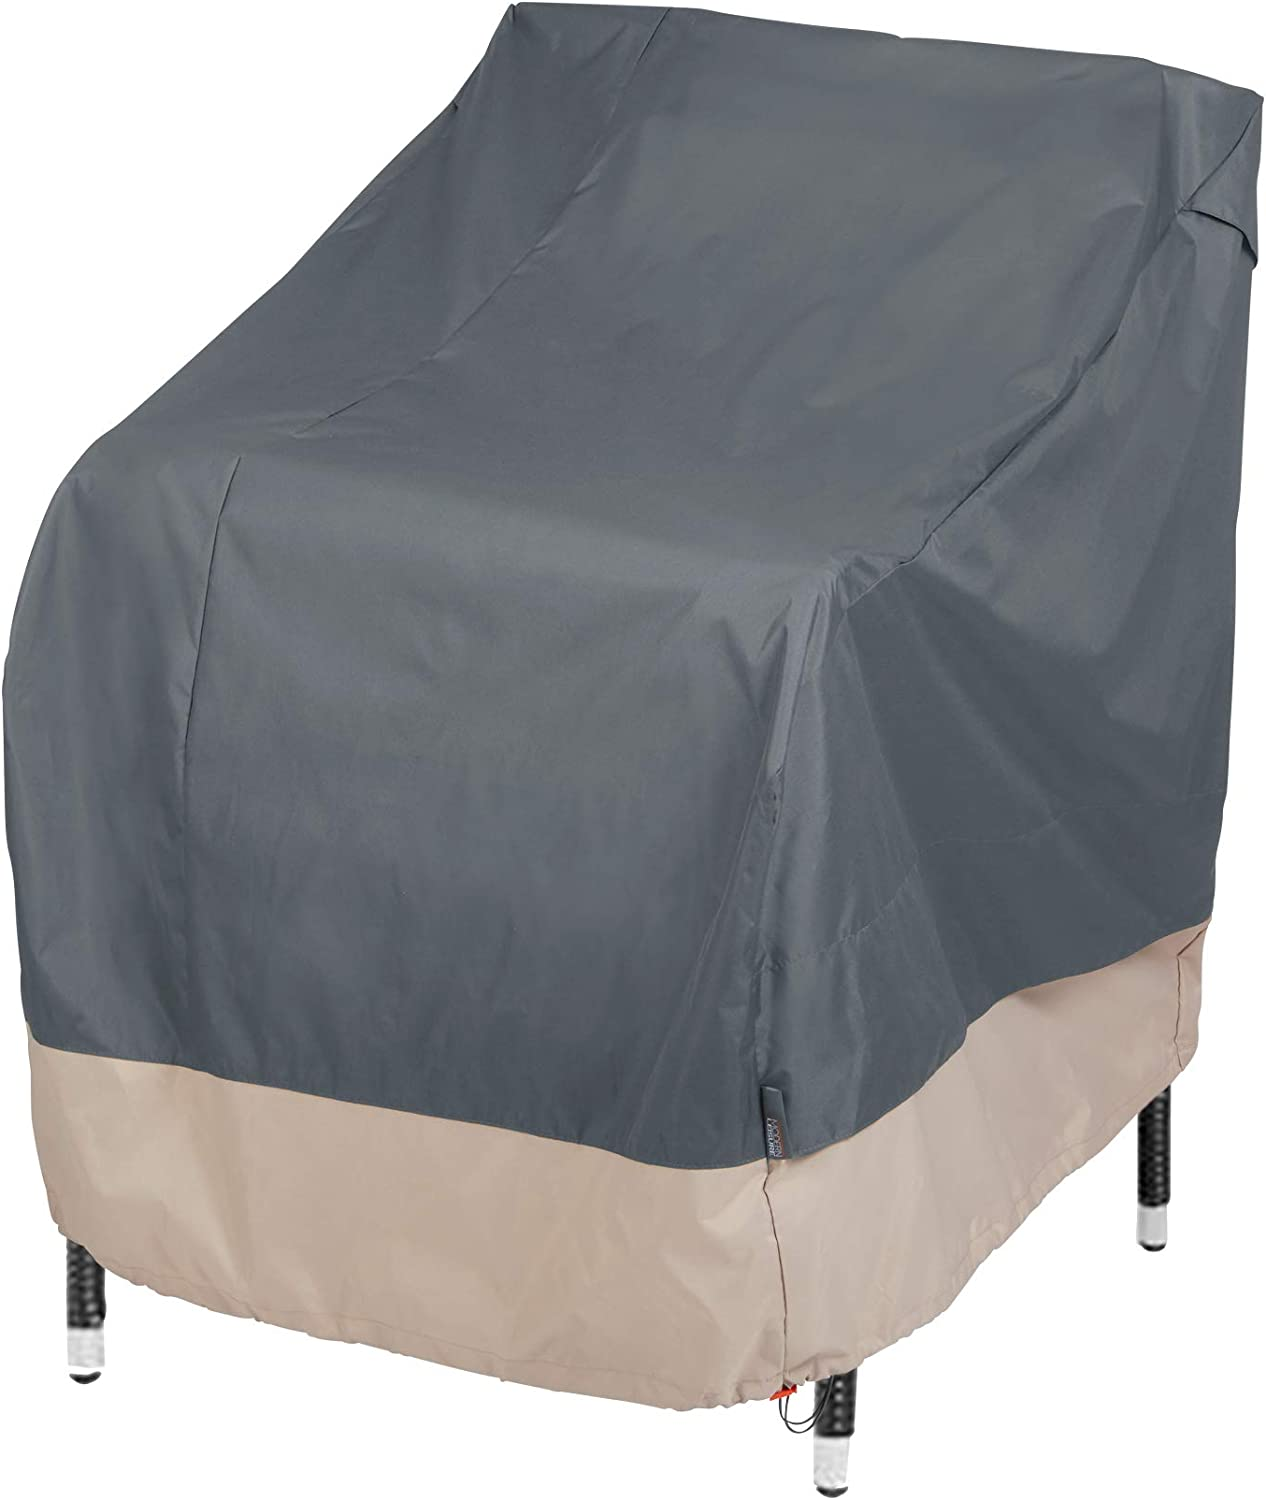 Modern Leisure 3134D Basics Outdoor Patio Chair Cover - Water Resistant (33 W x 34 D x 31 H inches), Khaki/Fossil : Garden & Outdoor